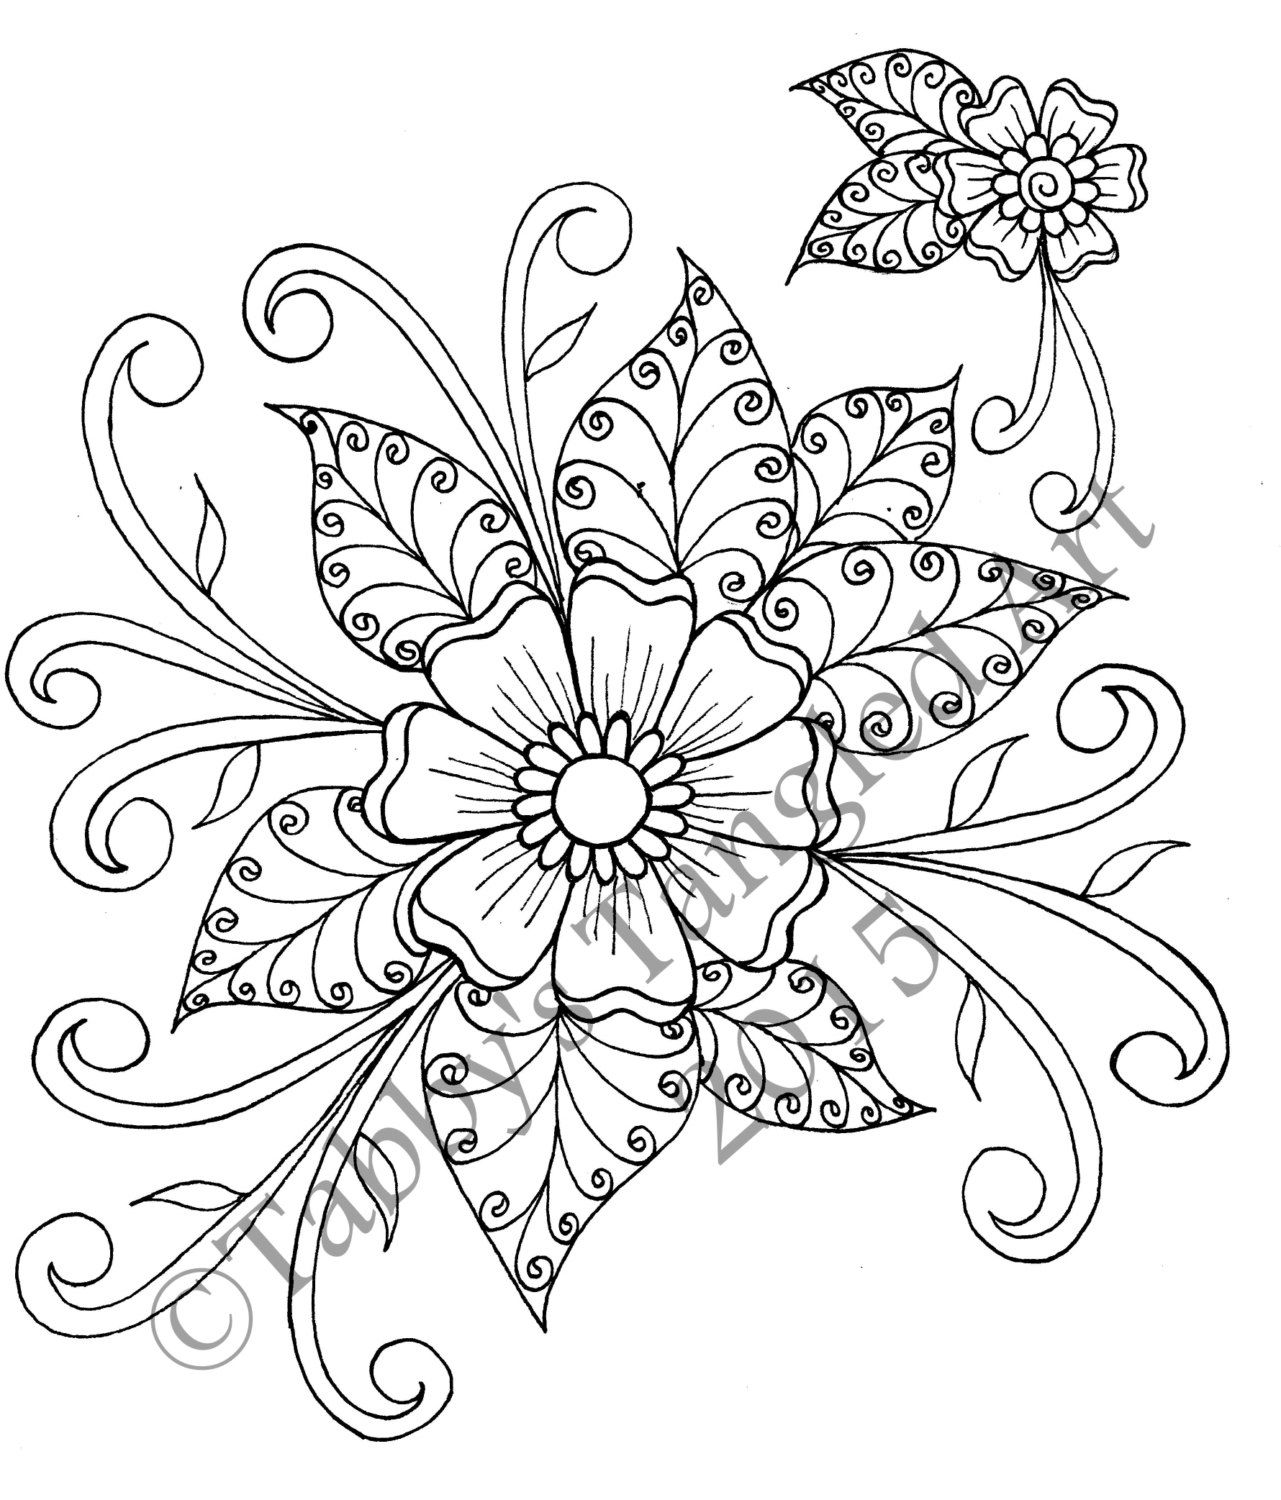 Coloring pages henna - Henna Flower Coloring Page By Tabbystangledart On Etsy Https Www Etsy